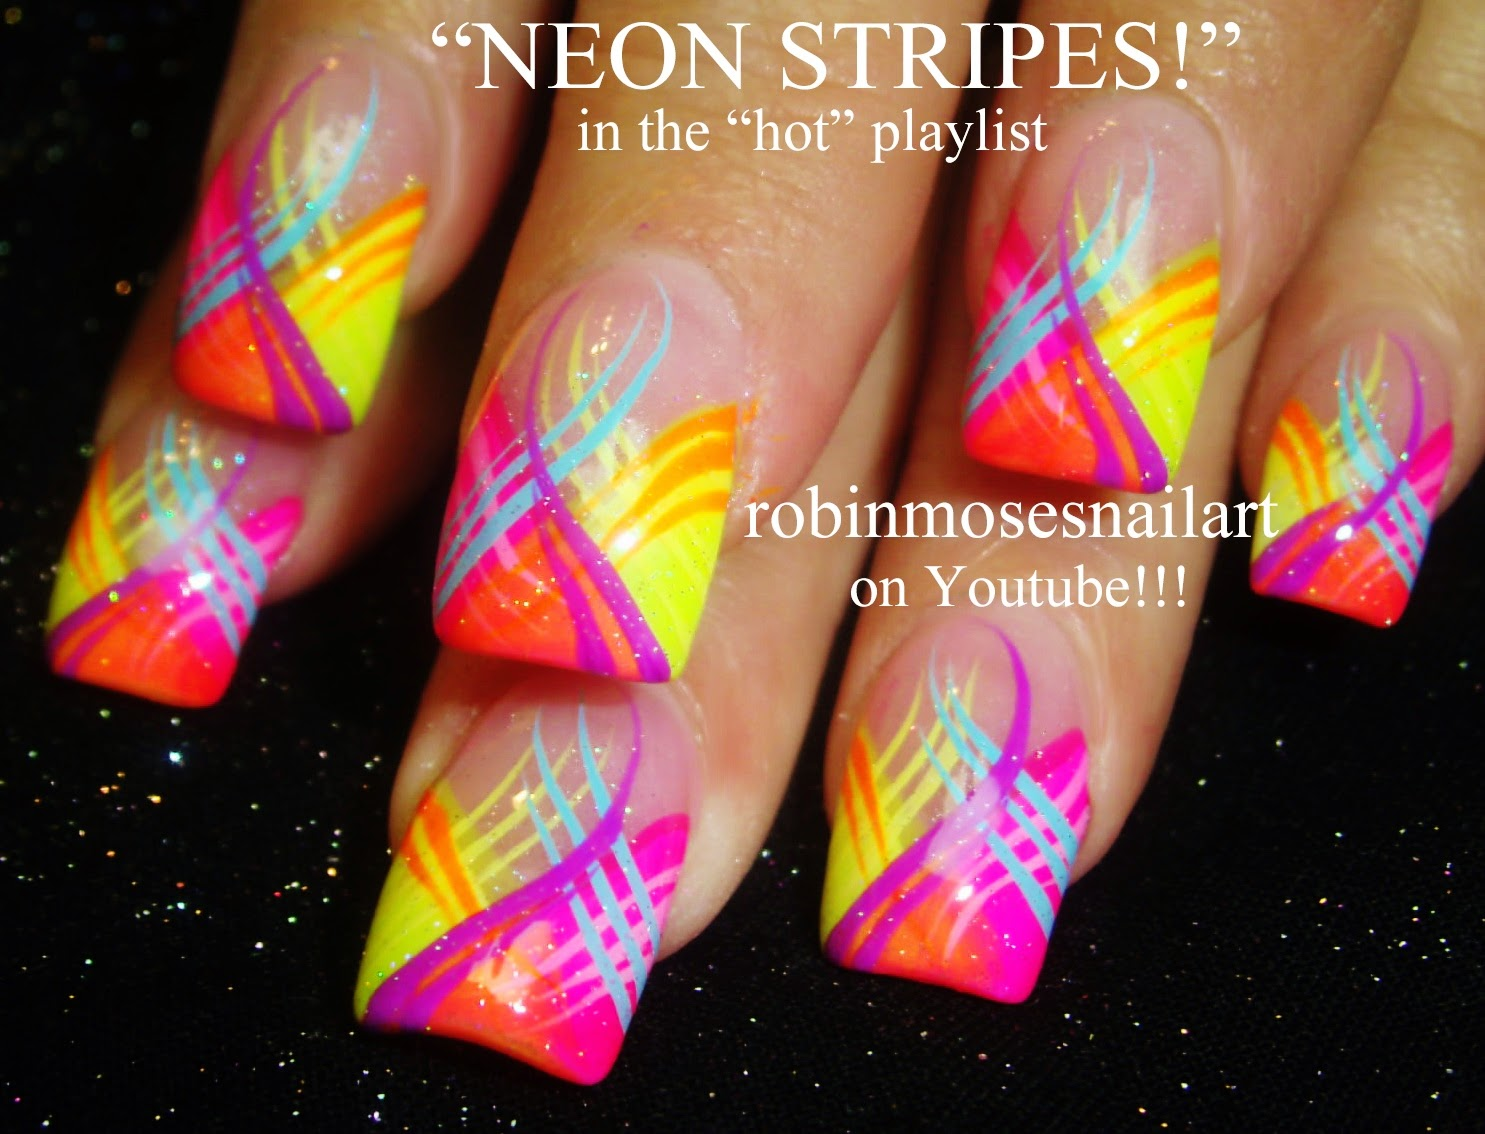 Robin moses nail art stripe nails stripe nail art blue nails nail art tutorials playlist for elegant nail designs diy formal nail art nail ideas for prom special parties for beginners professionals prinsesfo Gallery